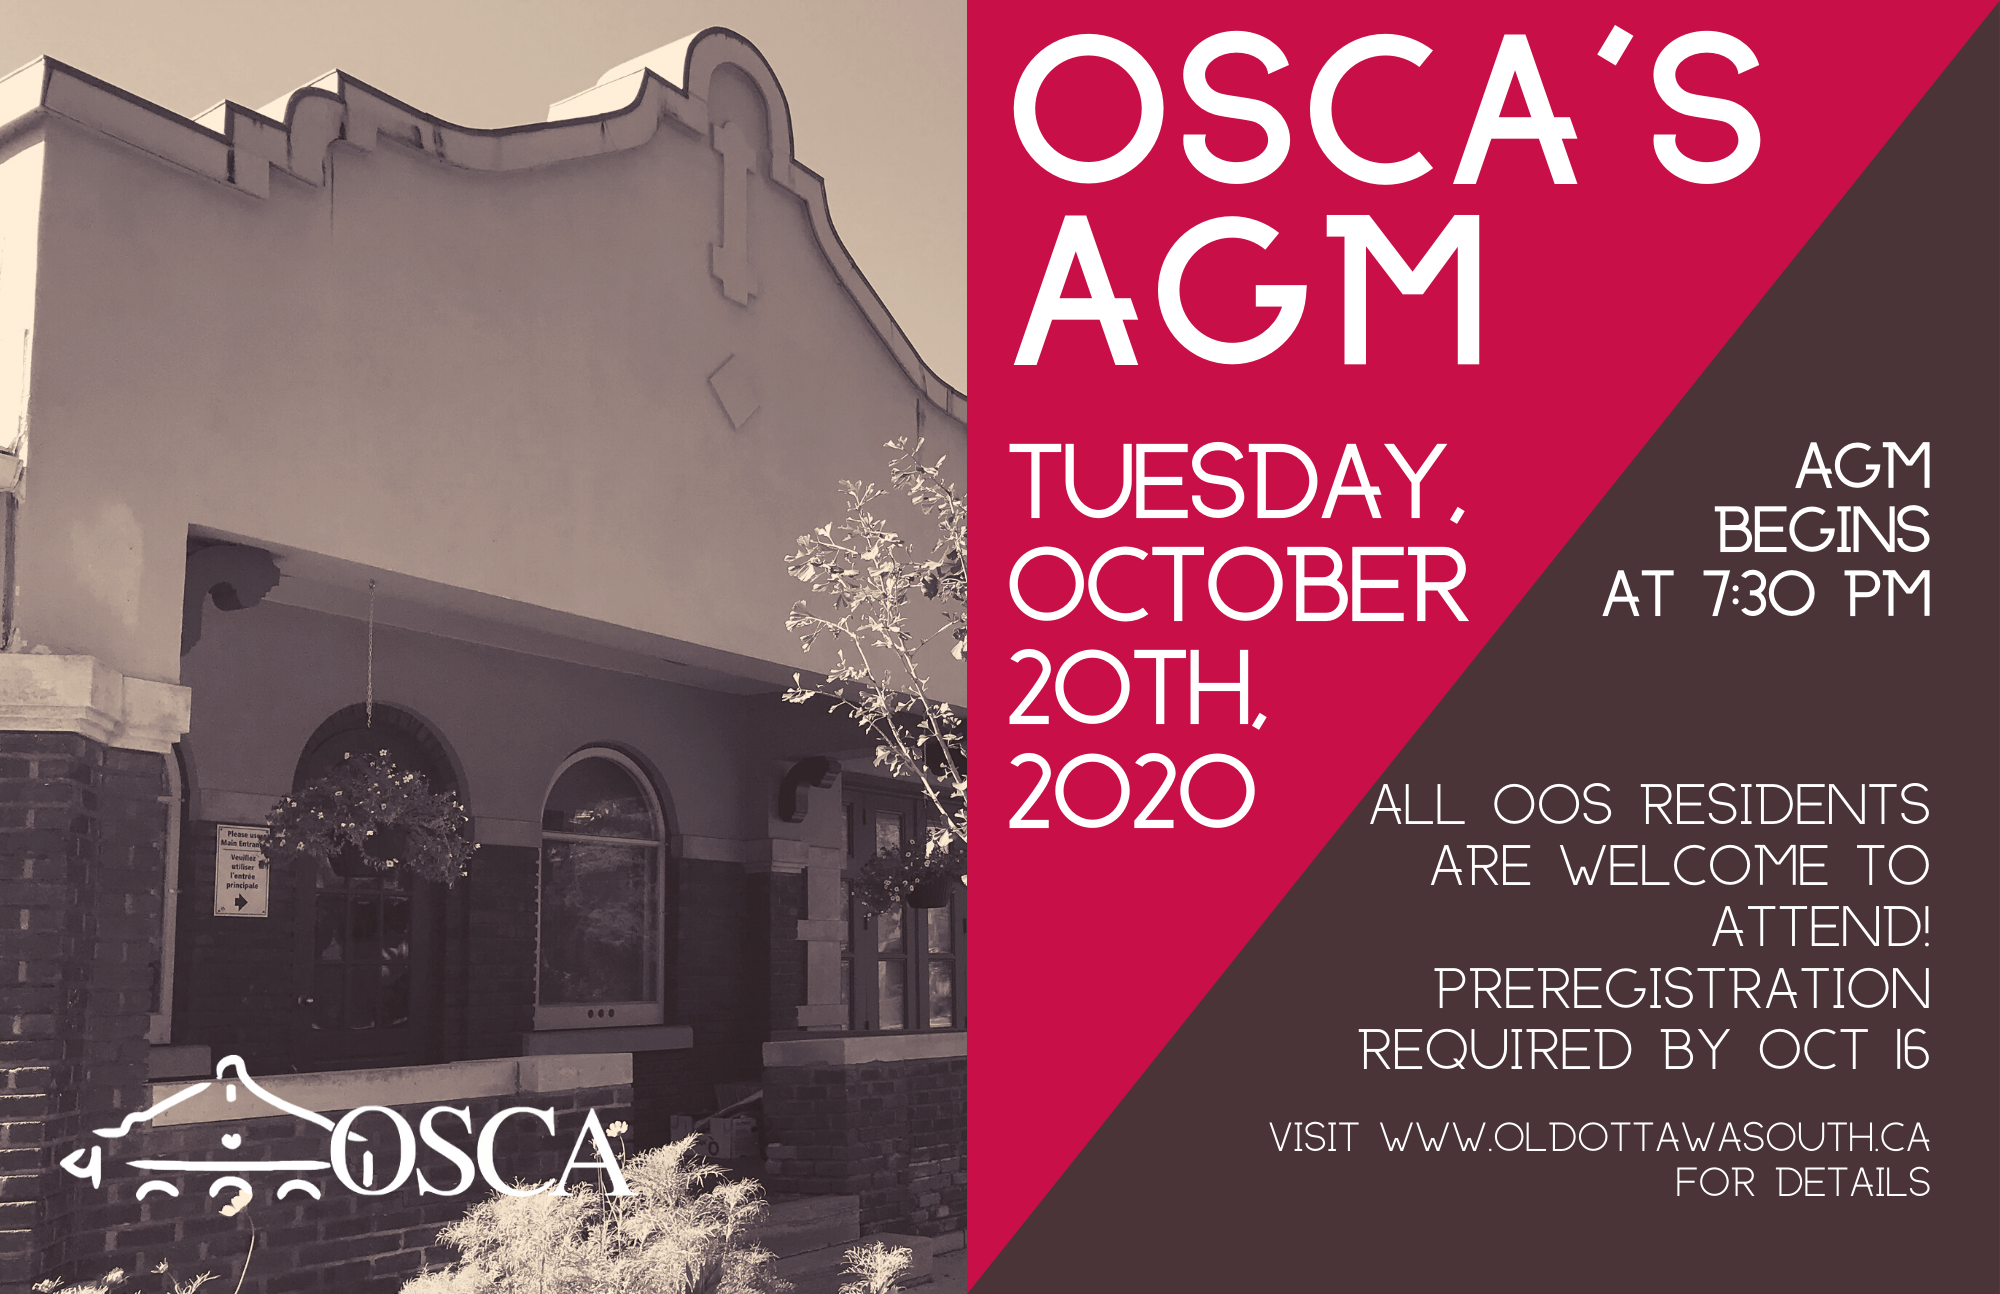 OSCA's AGM: Tuesday October 20th at 7:30pm. Registration now open.